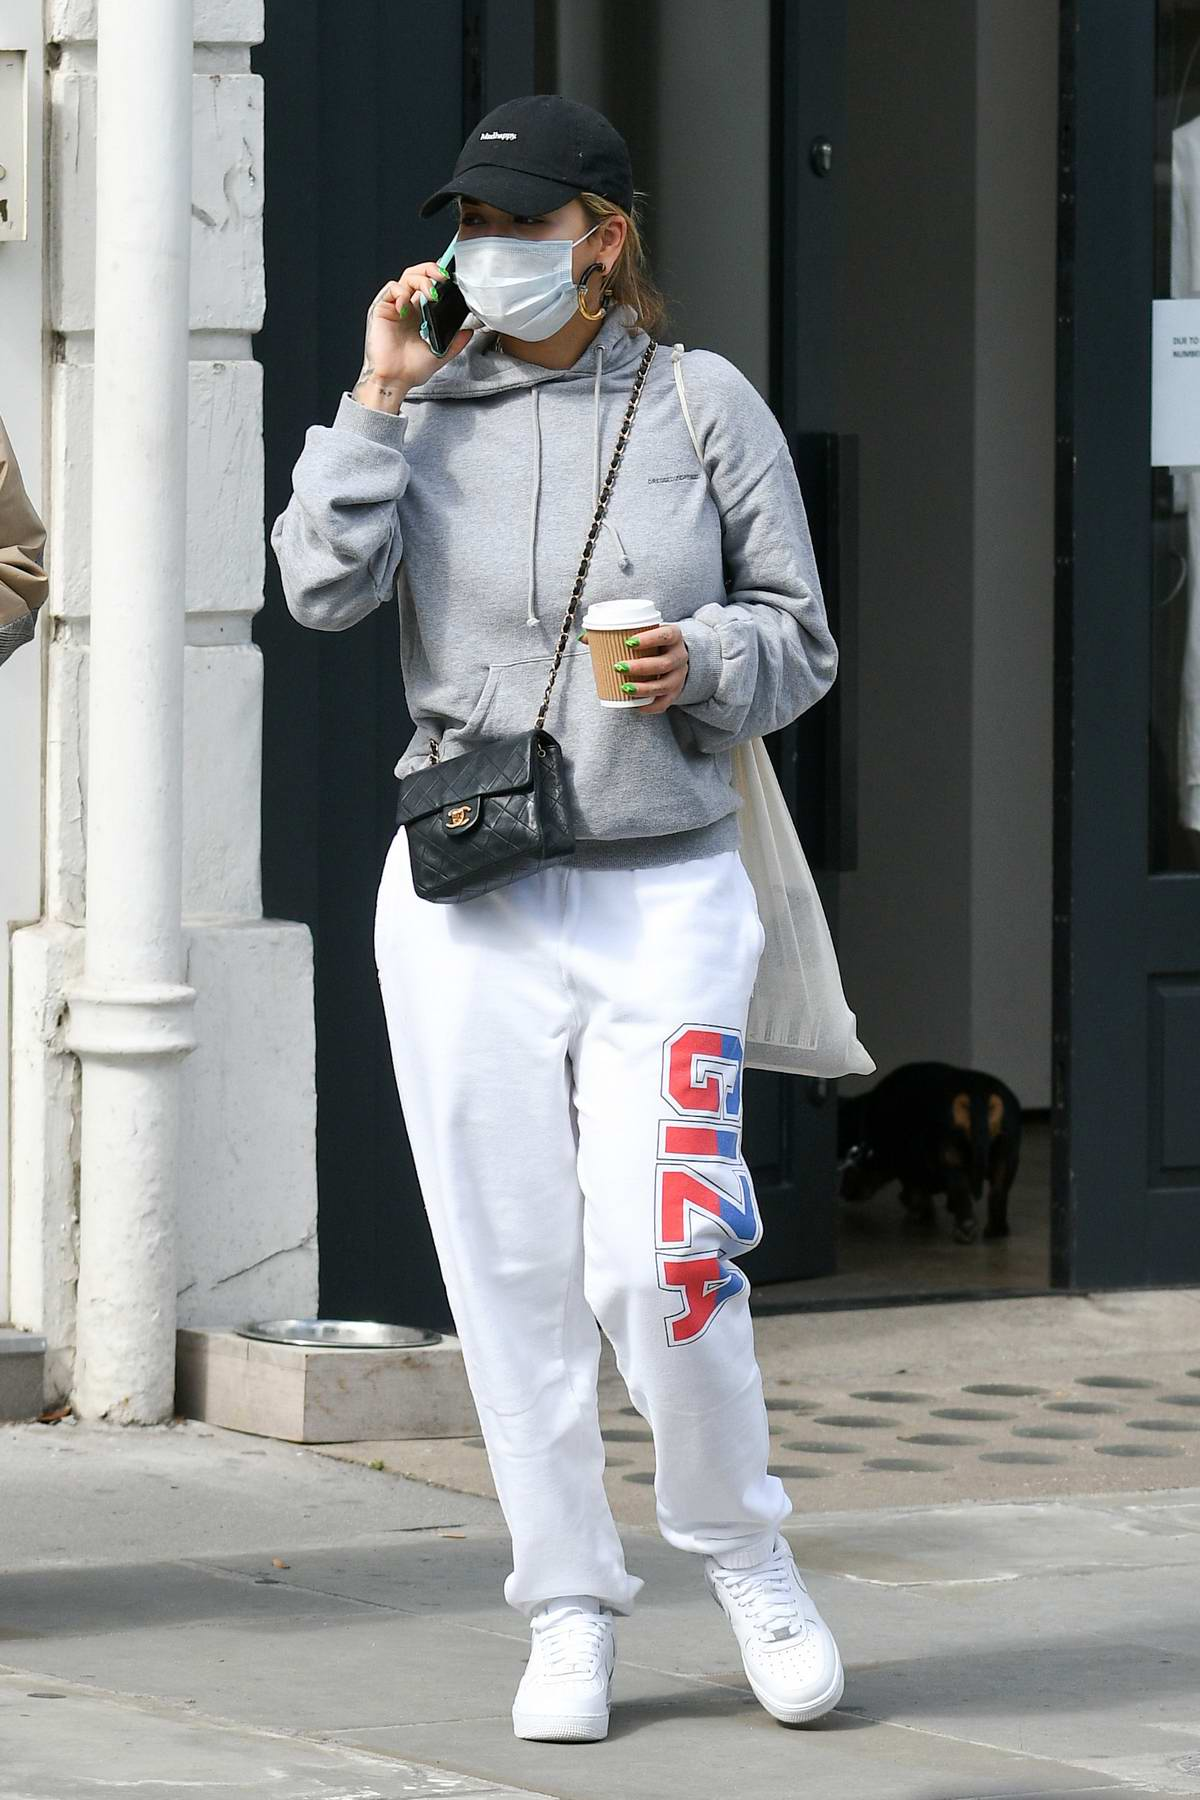 Rita Ora looks comfy in a hoodie and sweatpants while out for shopping in Notting Hill, London, UK